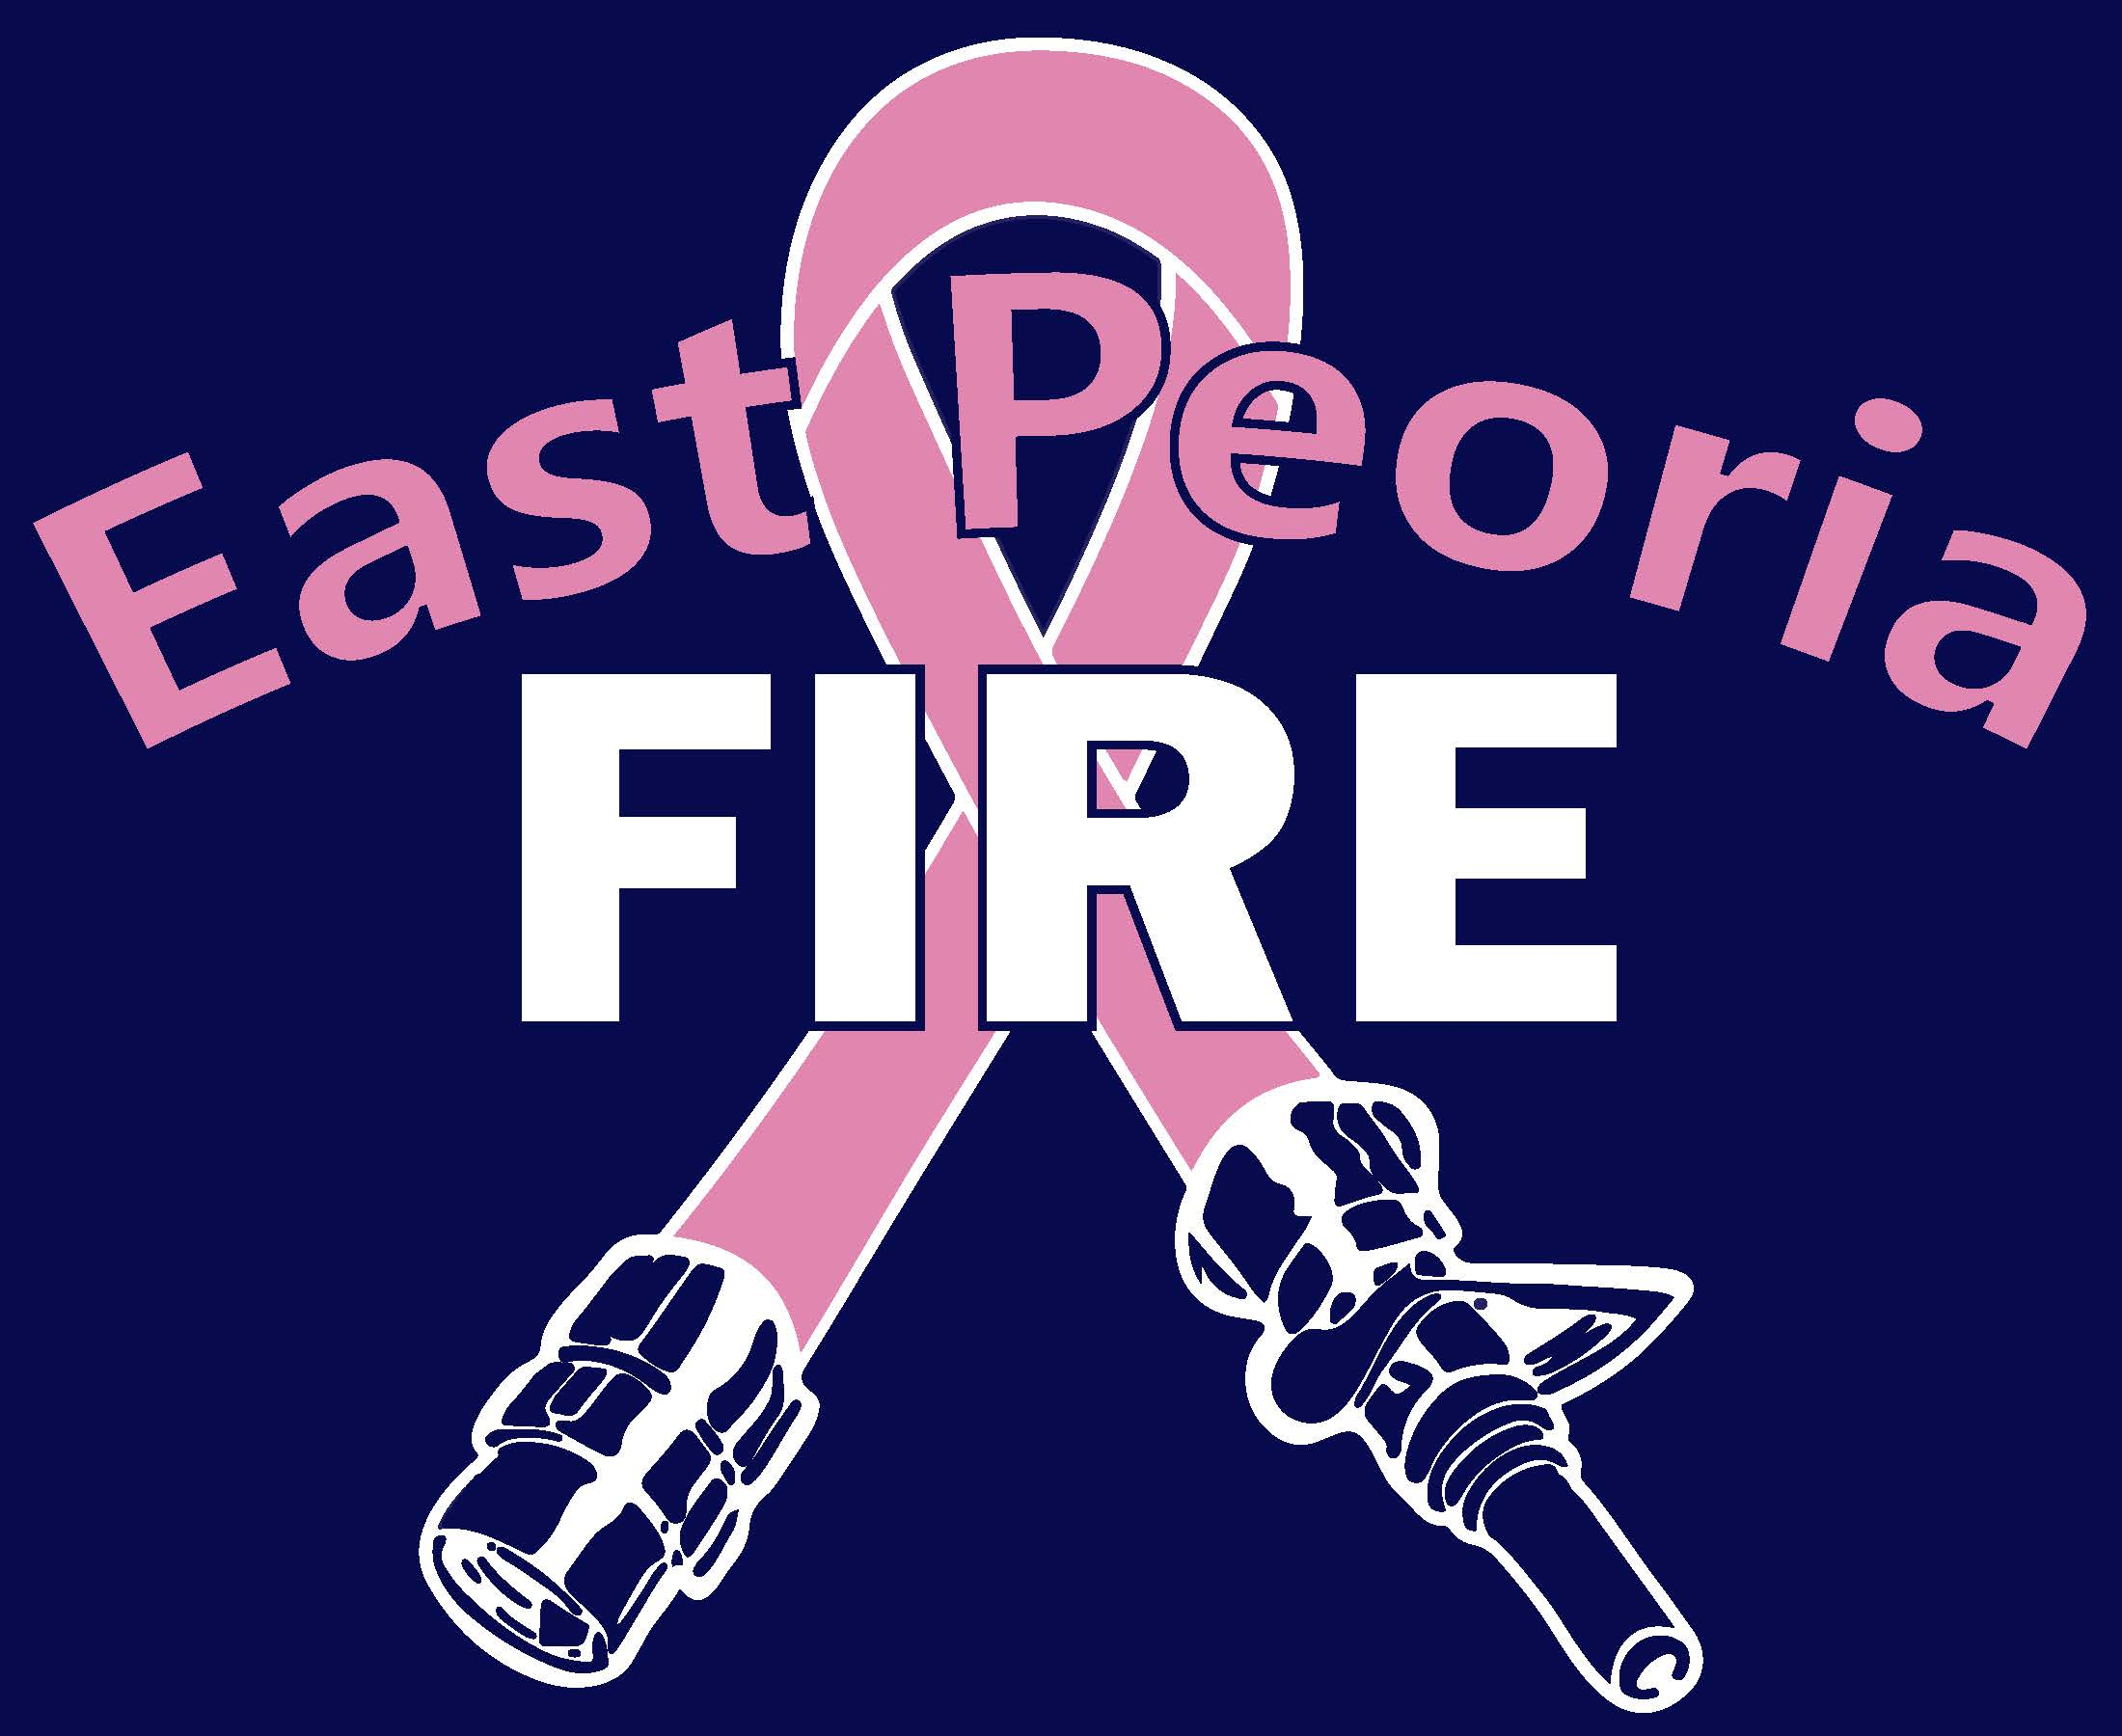 Words EastPeoria Fire with a pink fire hose shaped like the breast cancer awareness ribbon